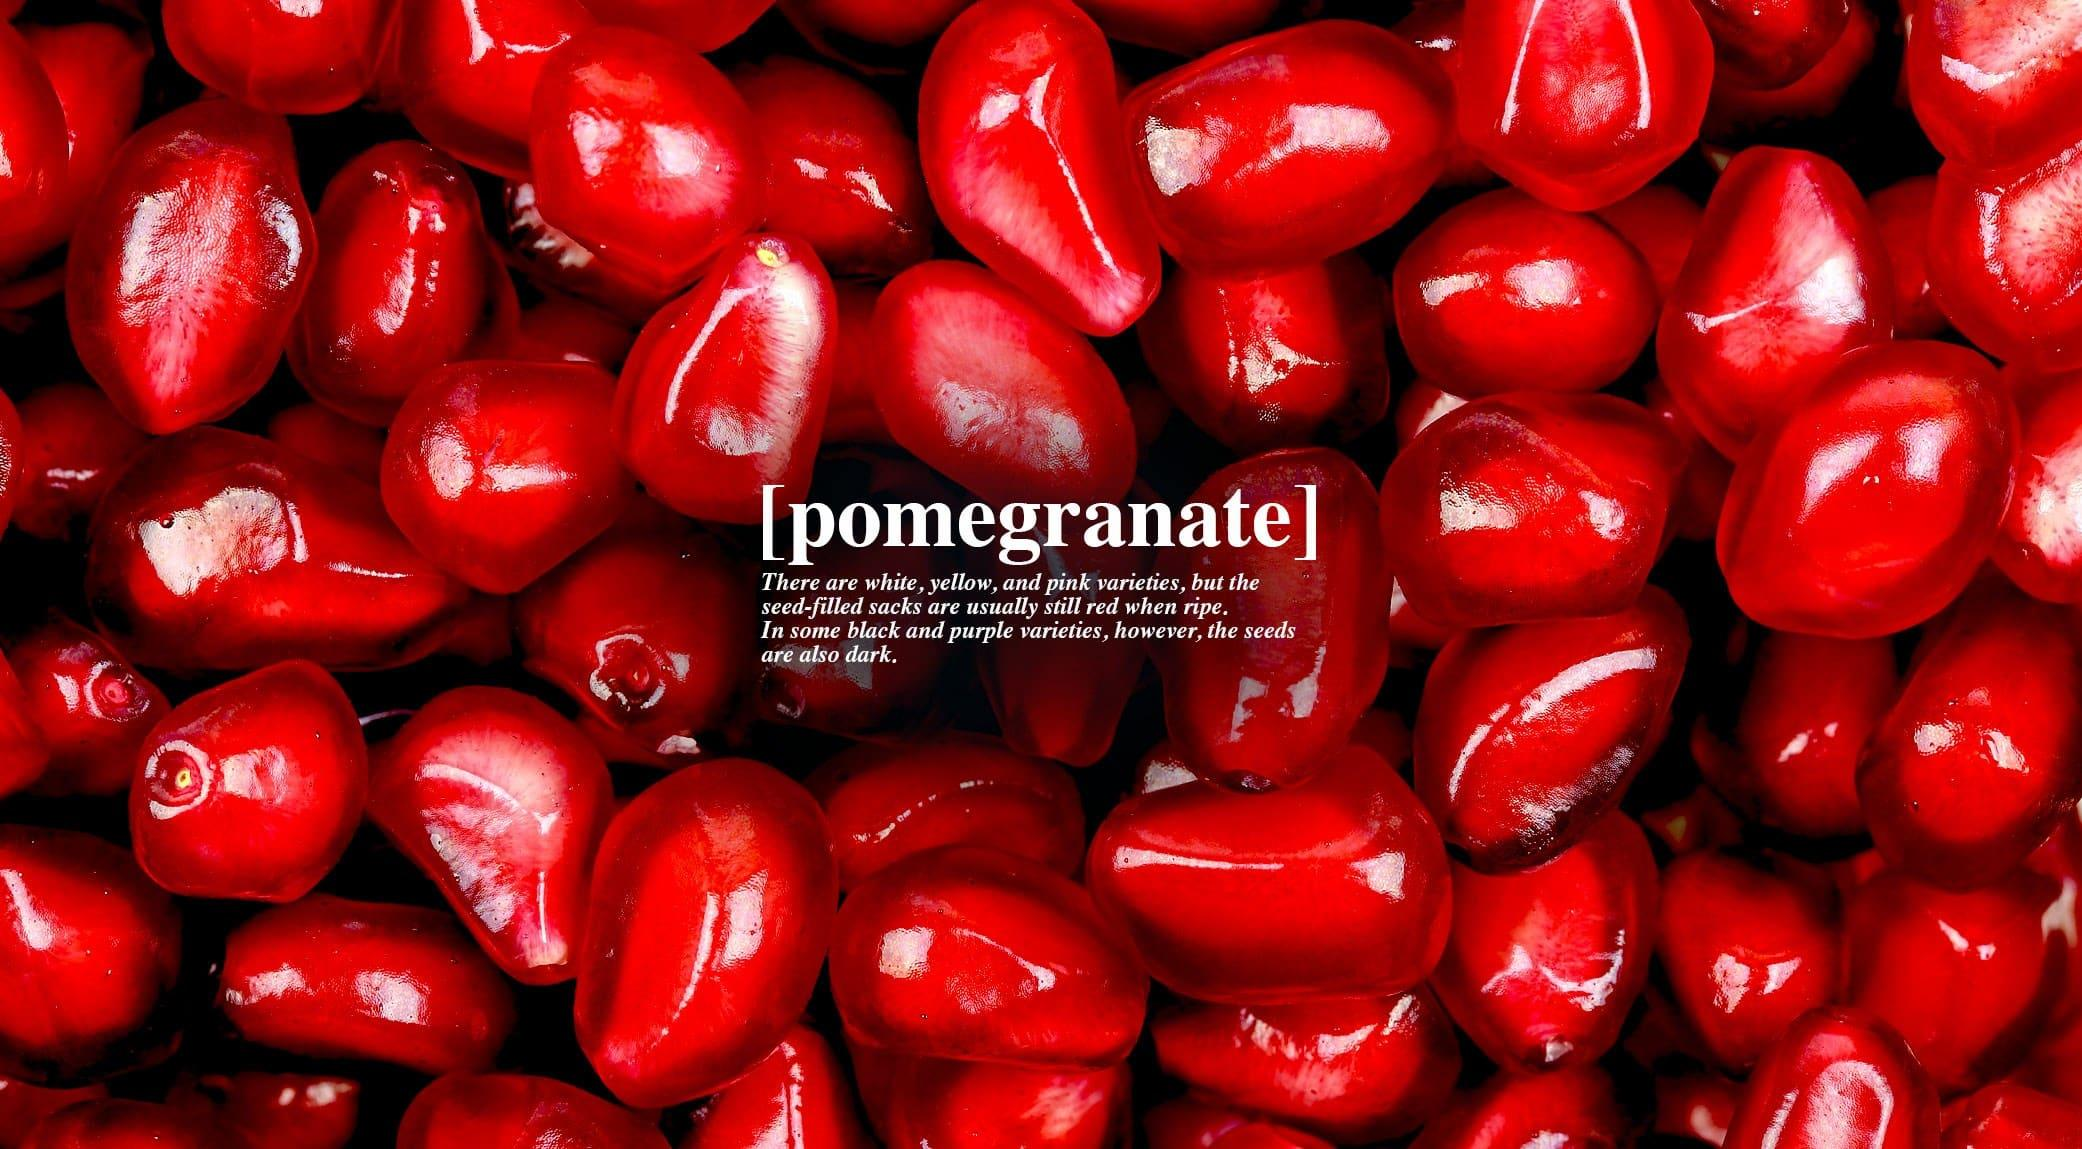 original_002-pomegranate-finedininglovers.jpg